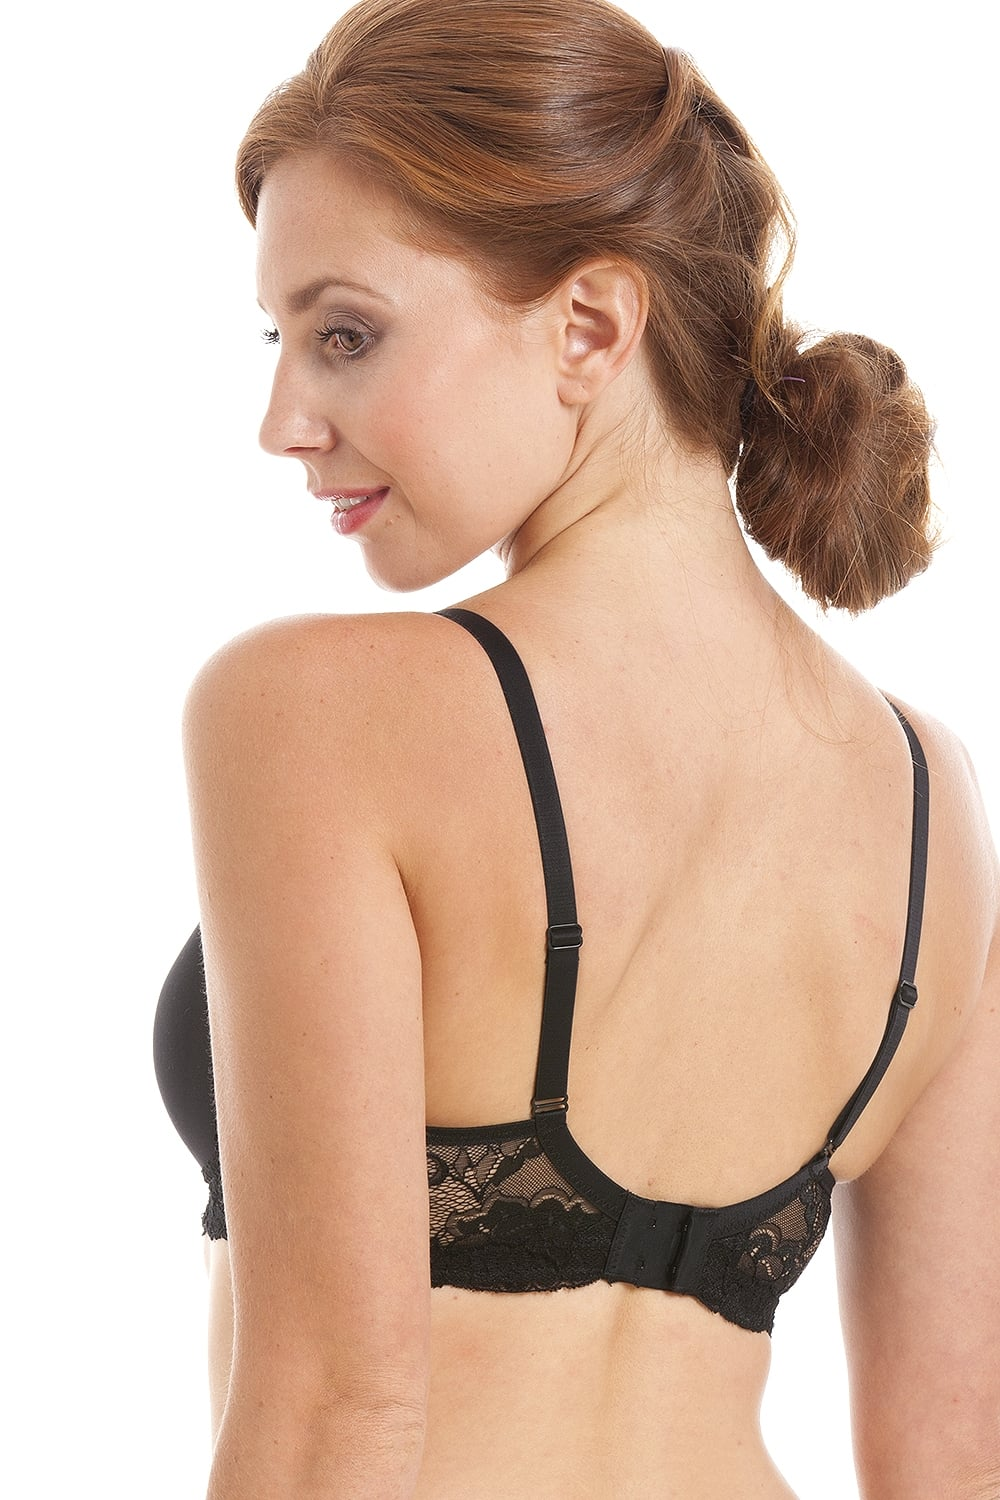 295b7f0ead Royce Lingerie Black Non Wired Pocketed Moulded Cup Mastectomy Bra